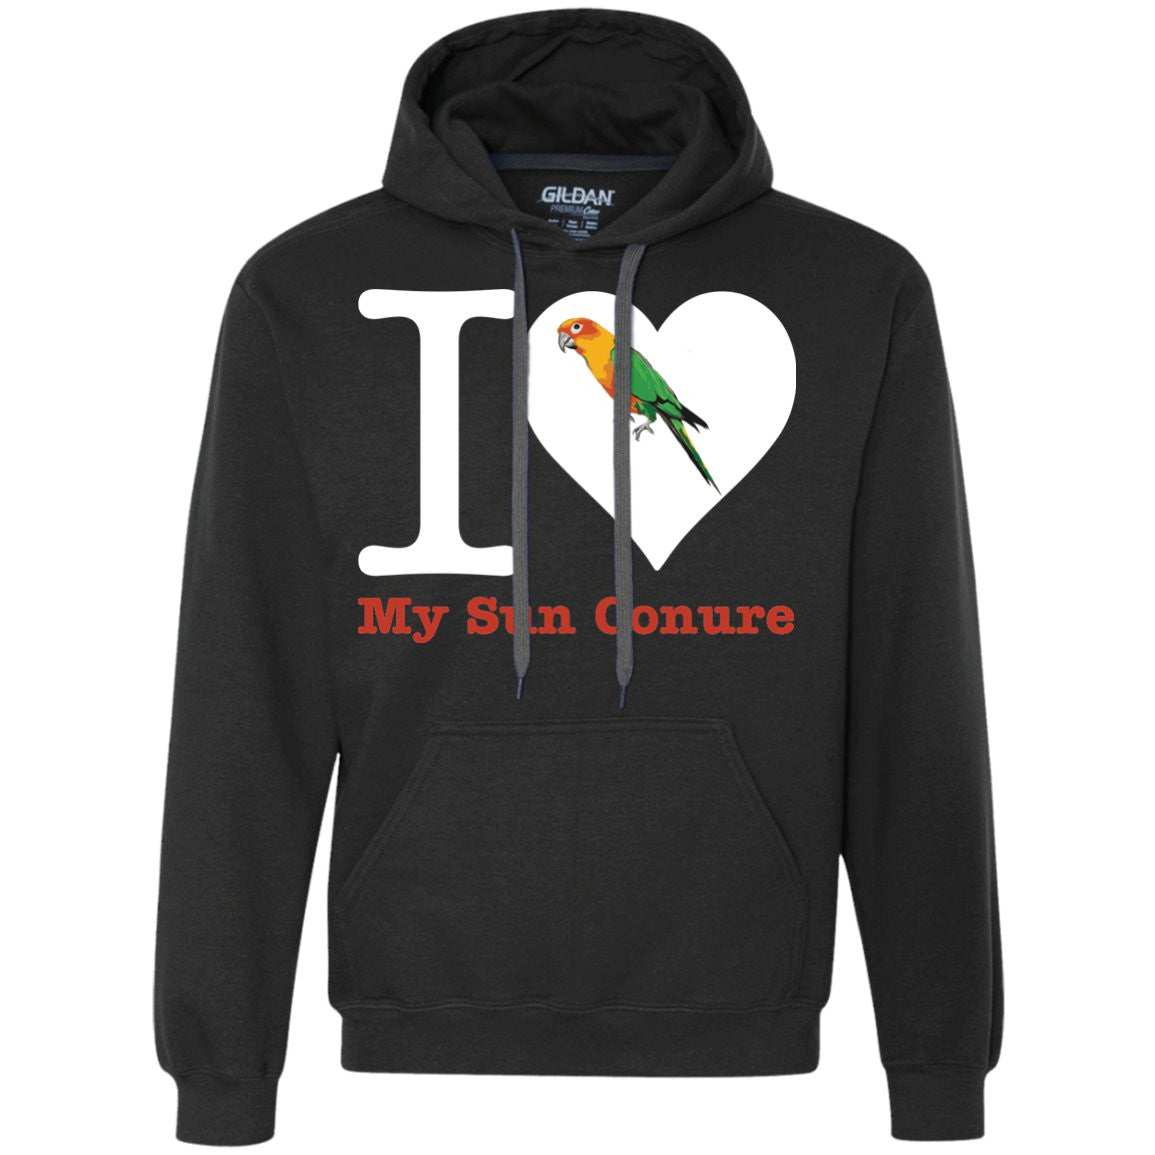 Sun Conure Shirt - Love My Sun Conure  Heavyweight Pullover Fleece Sweatshirt